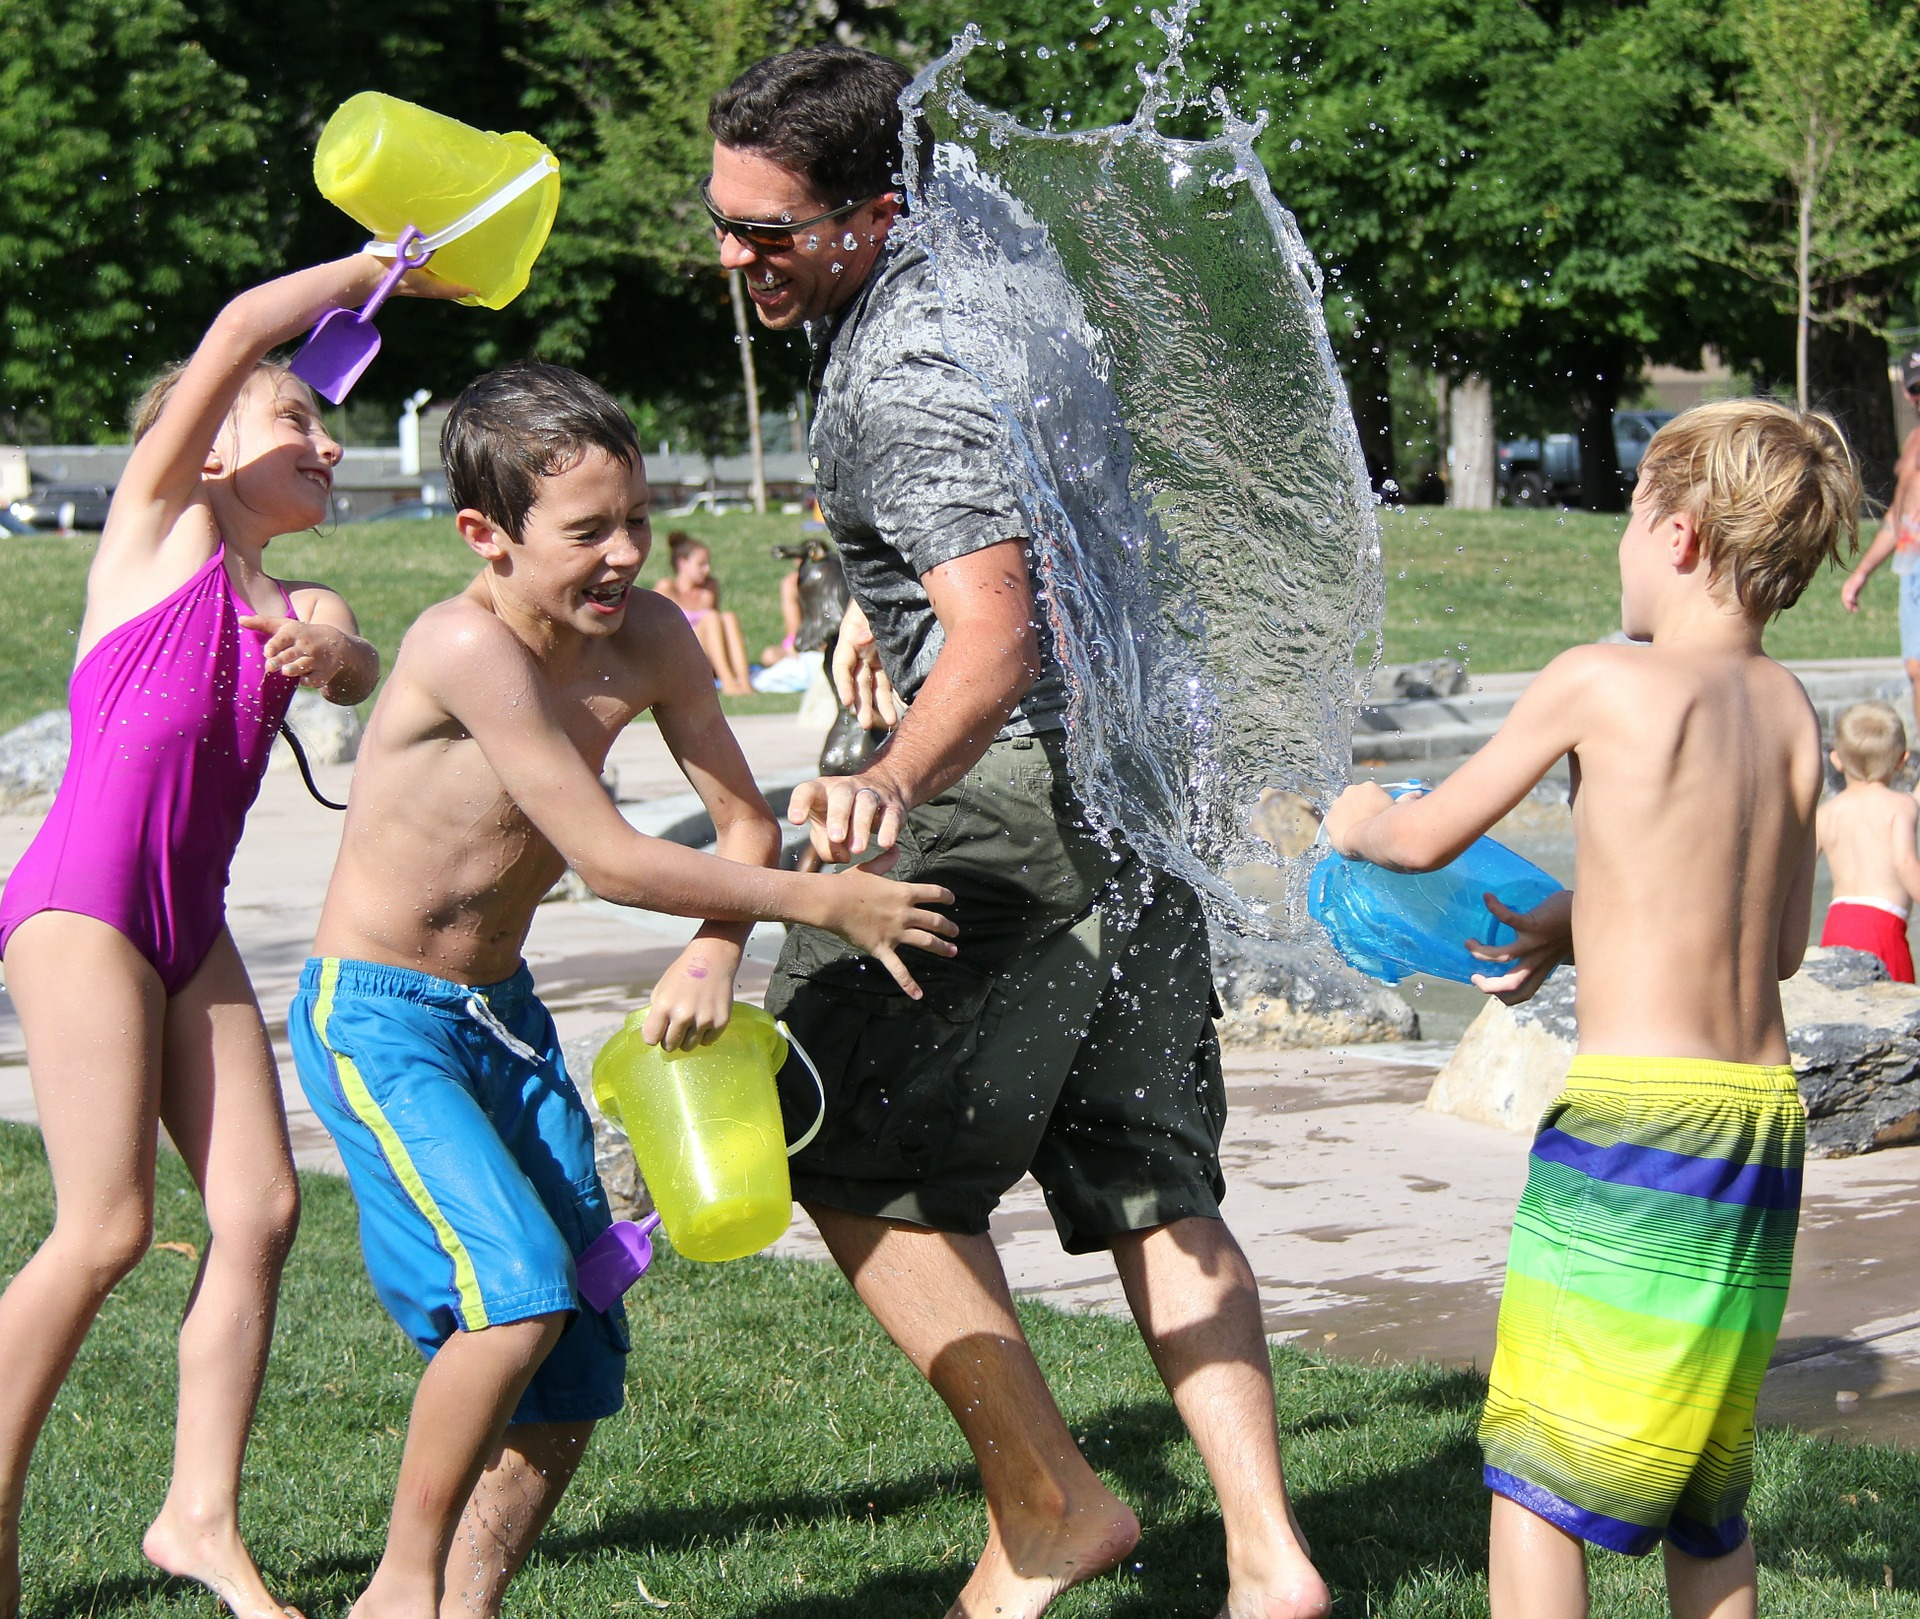 Image: Man and children laughing having a water fight